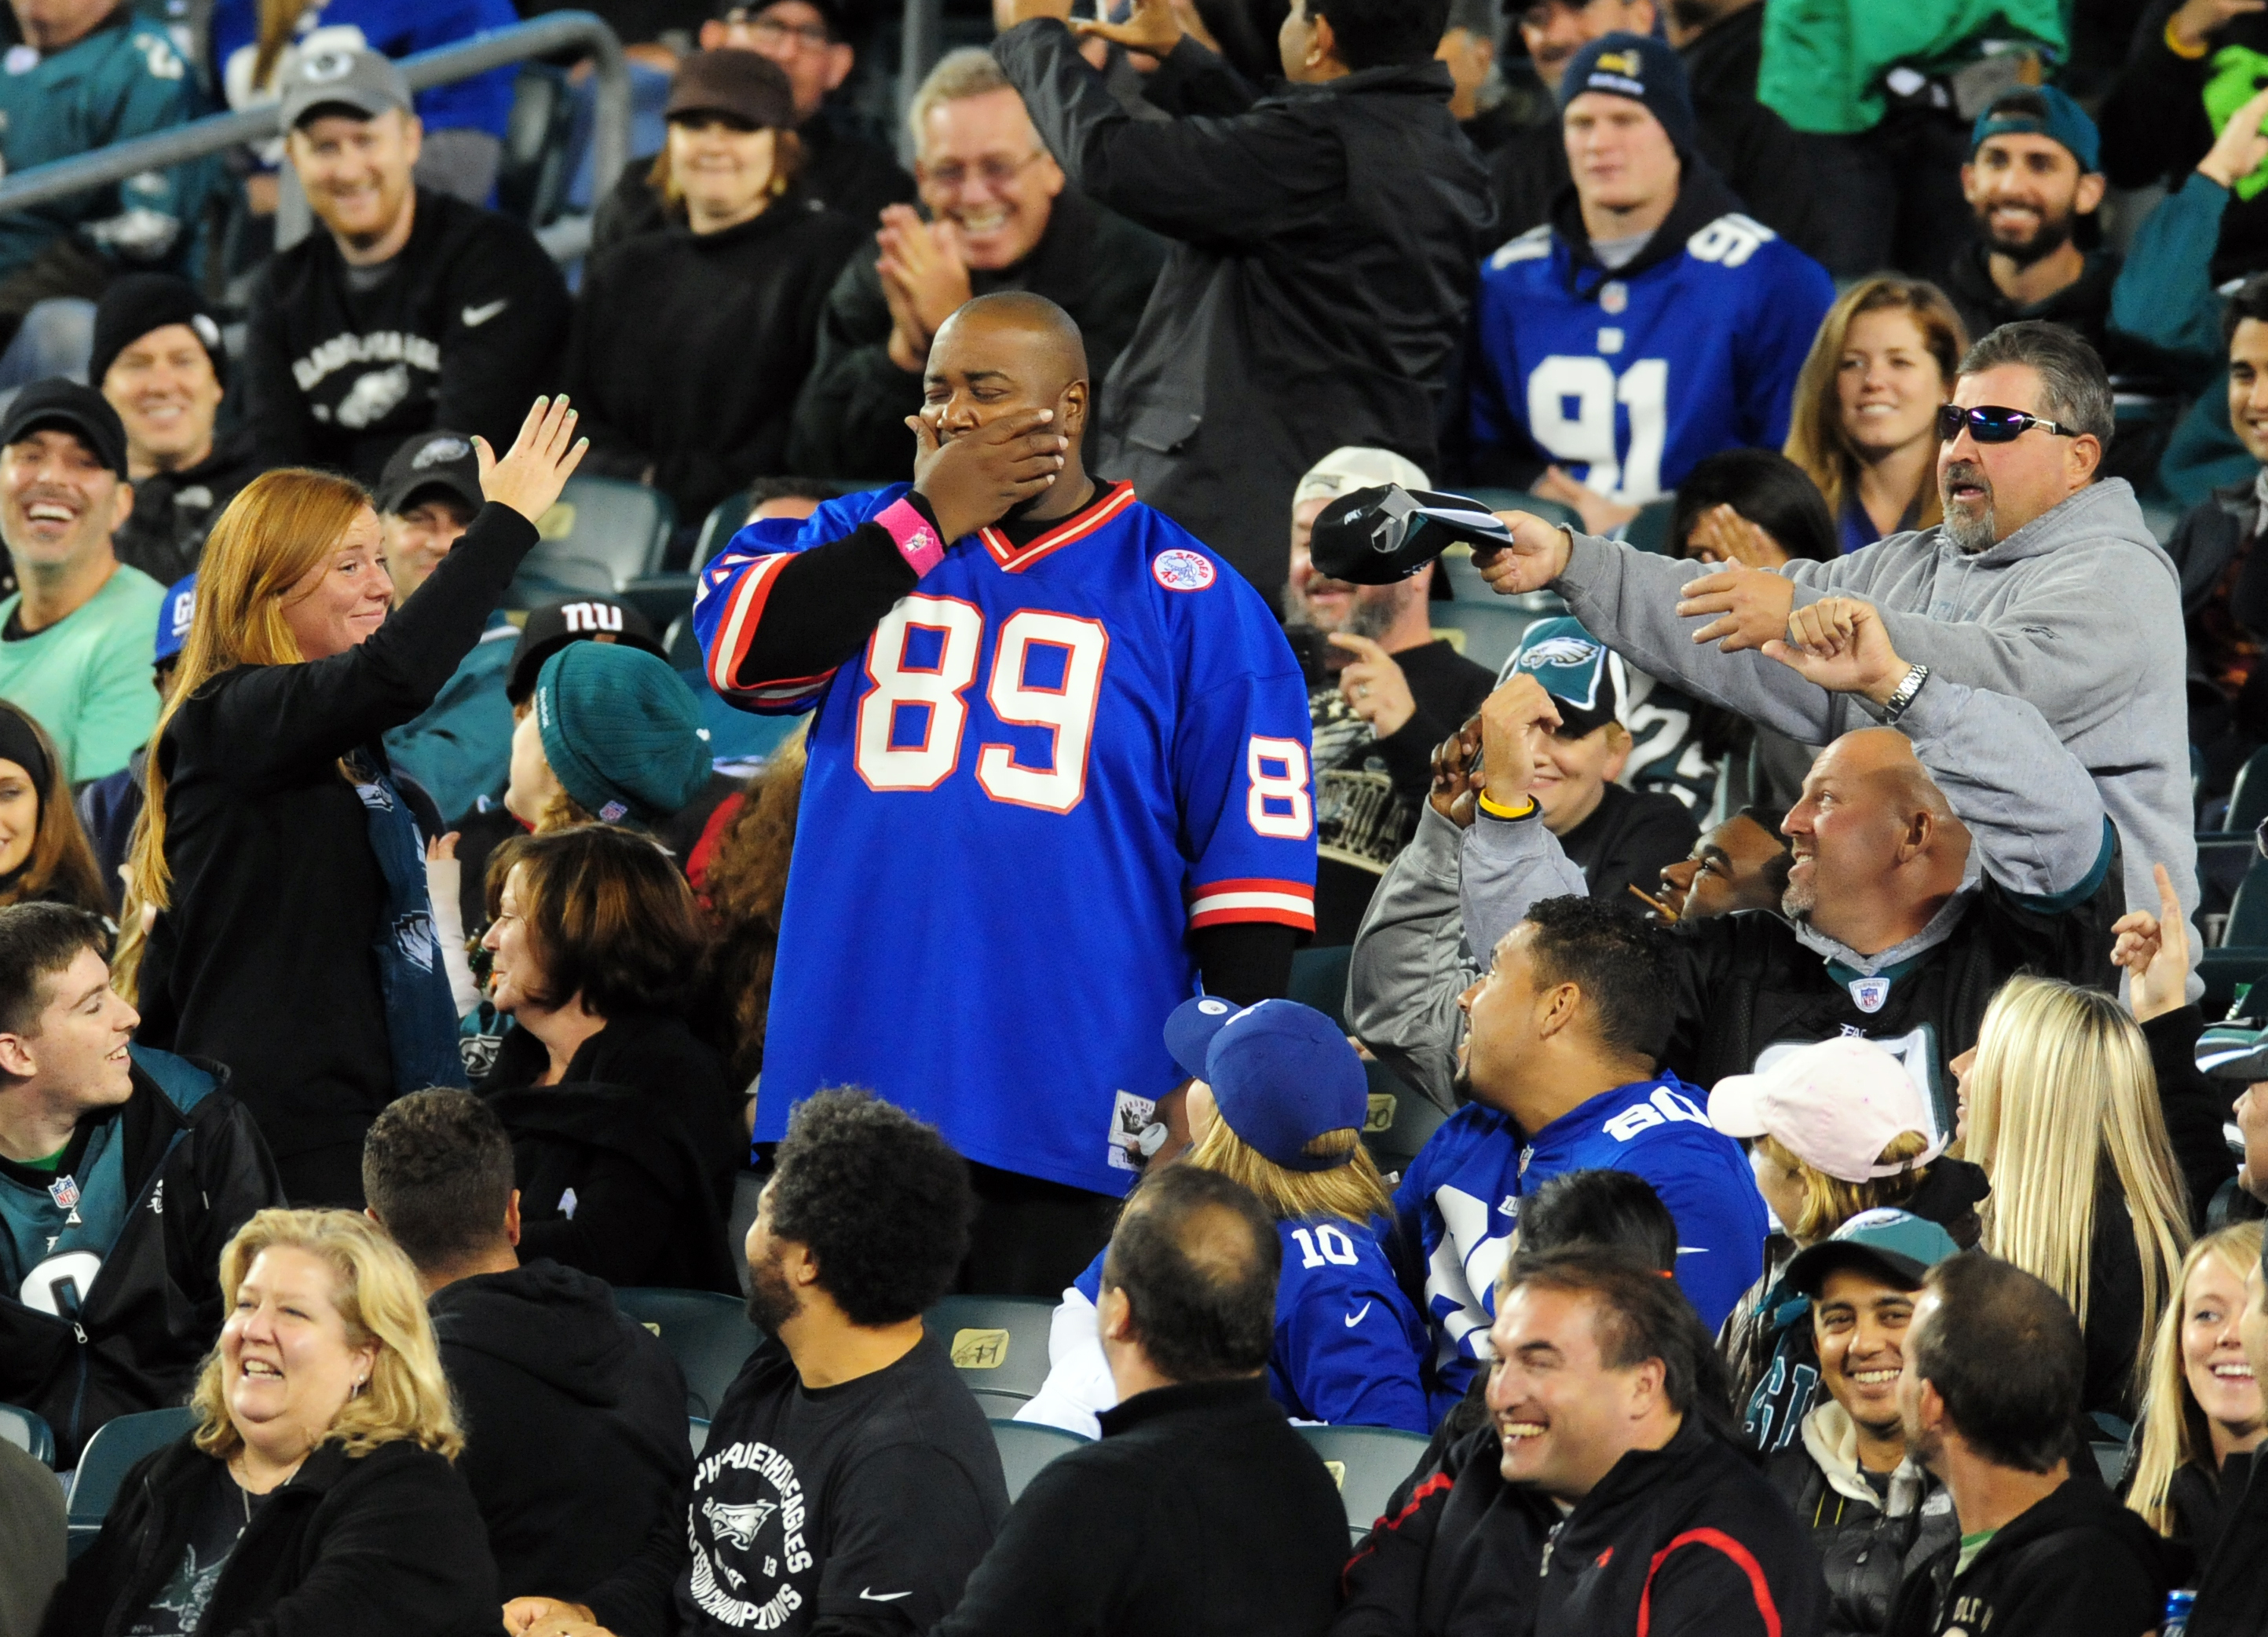 Will Giants fans get the last laugh in Philly on Monday night?